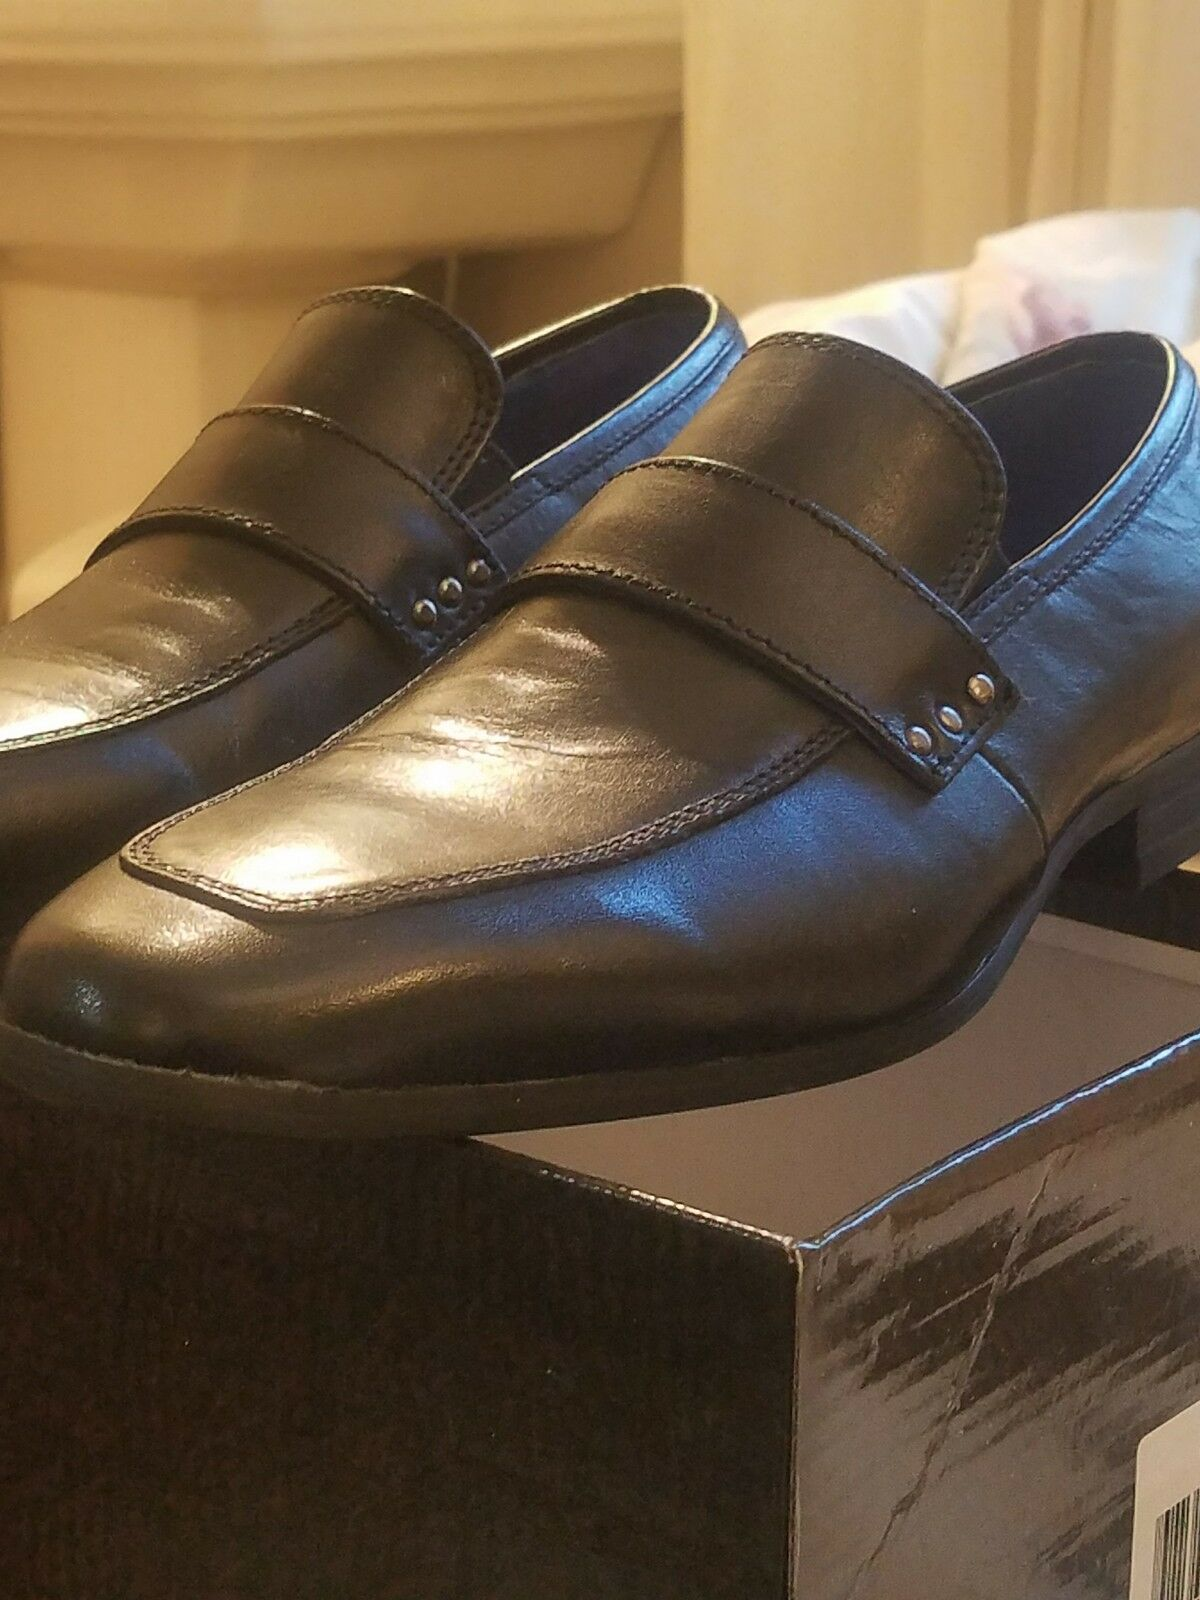 regal by mirage mens shoes for sale online